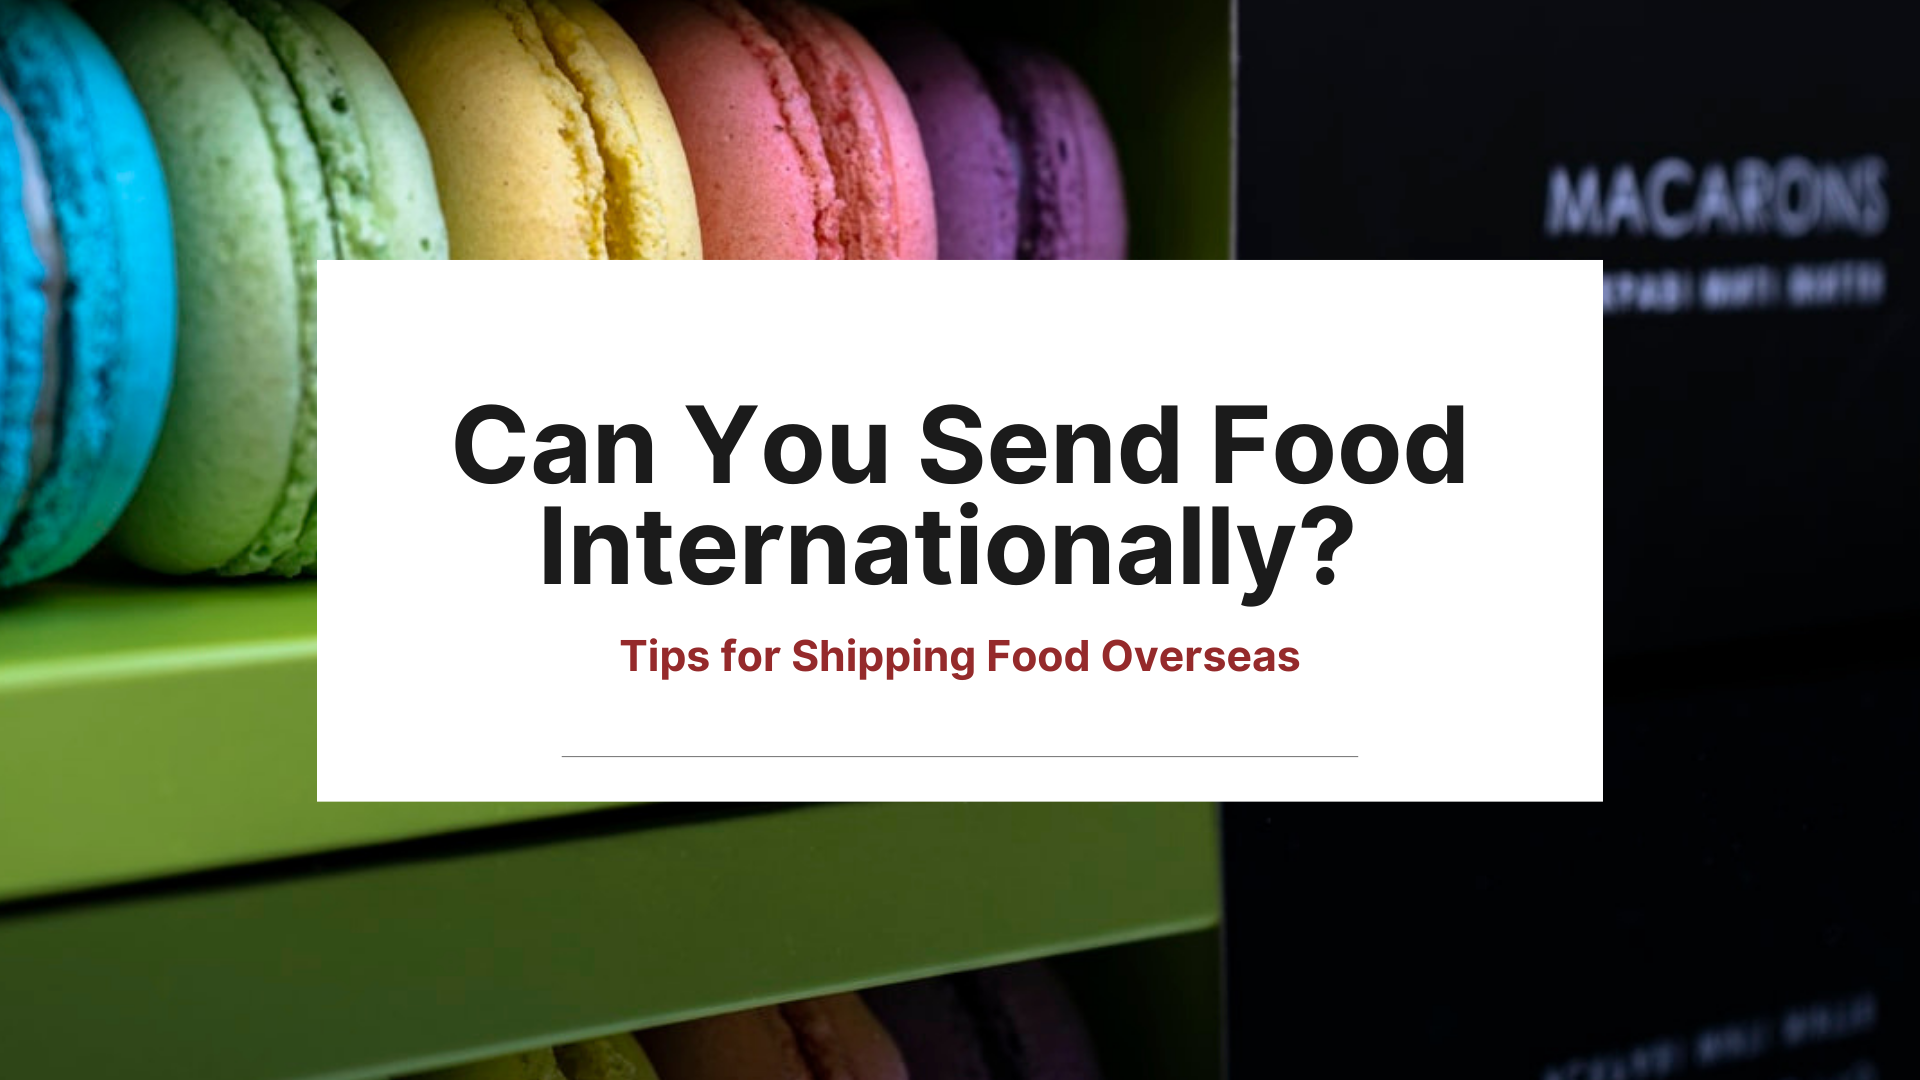 send-food-internationally-ship-oversea